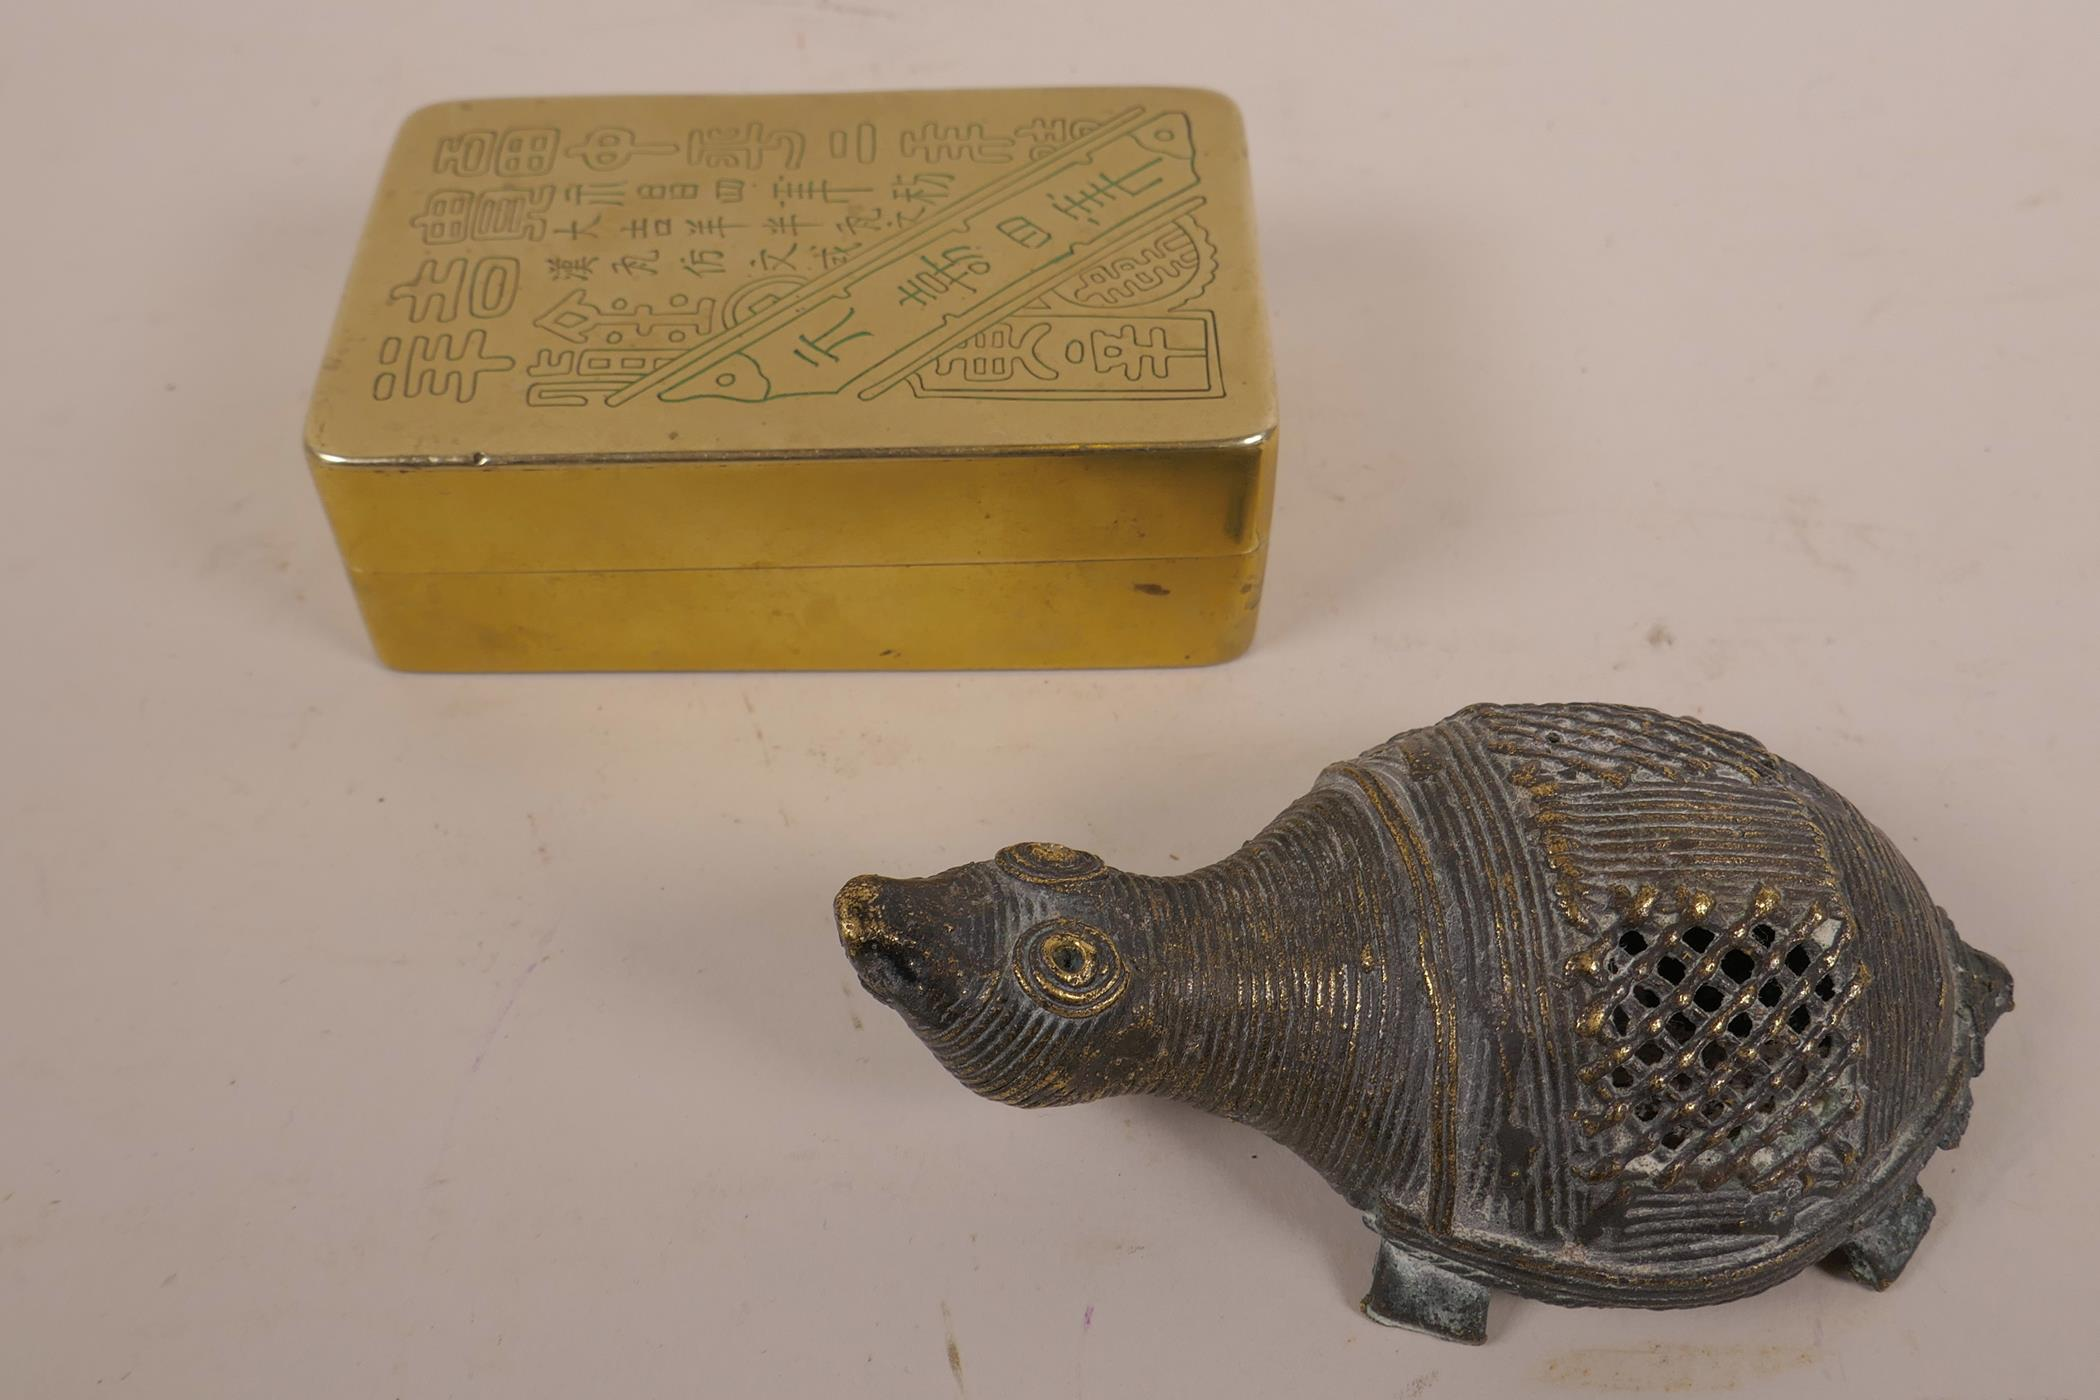 Lot 21 - A Chinese brass box, engraved with Chinese calligraphy and internally lined with copper (and